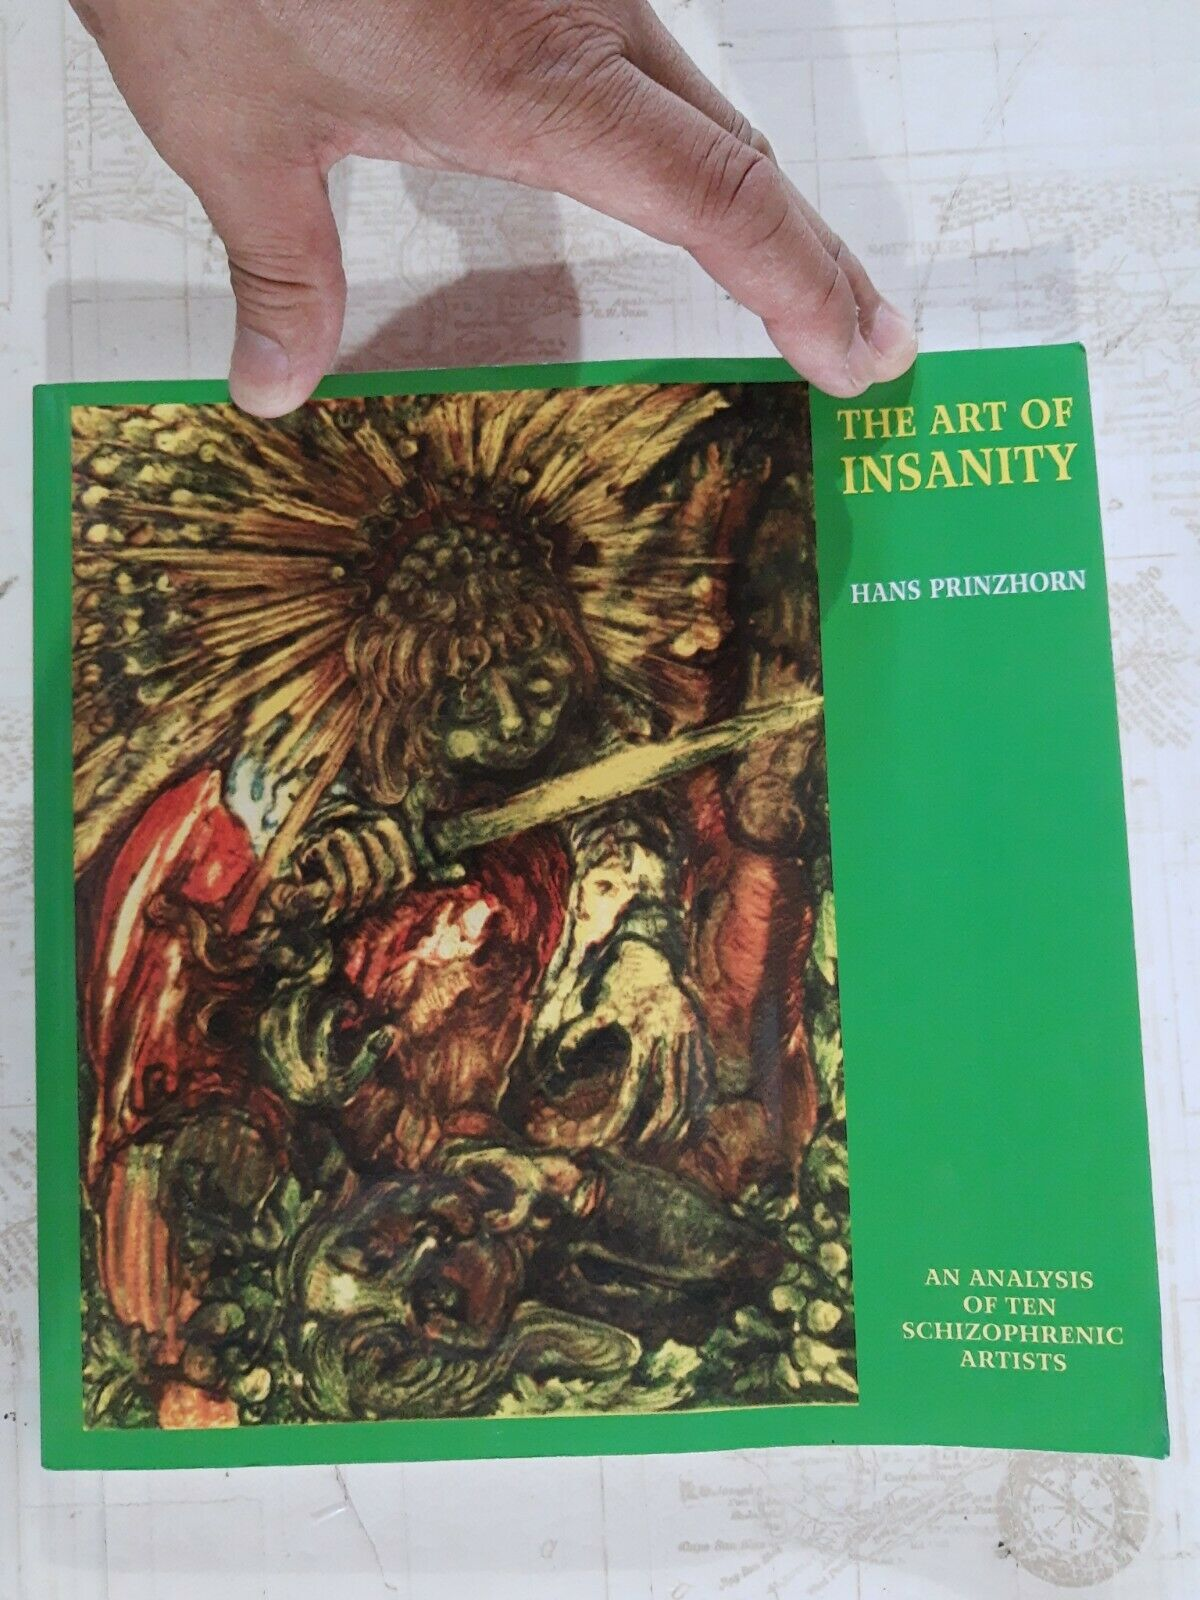 Solar Research Archive Ser The Art Of Insanity An Analysis Of Ten Schizophrenic Artists By Hans Prinzhorn 2011 Trade Paperback For Sale Online Ebay